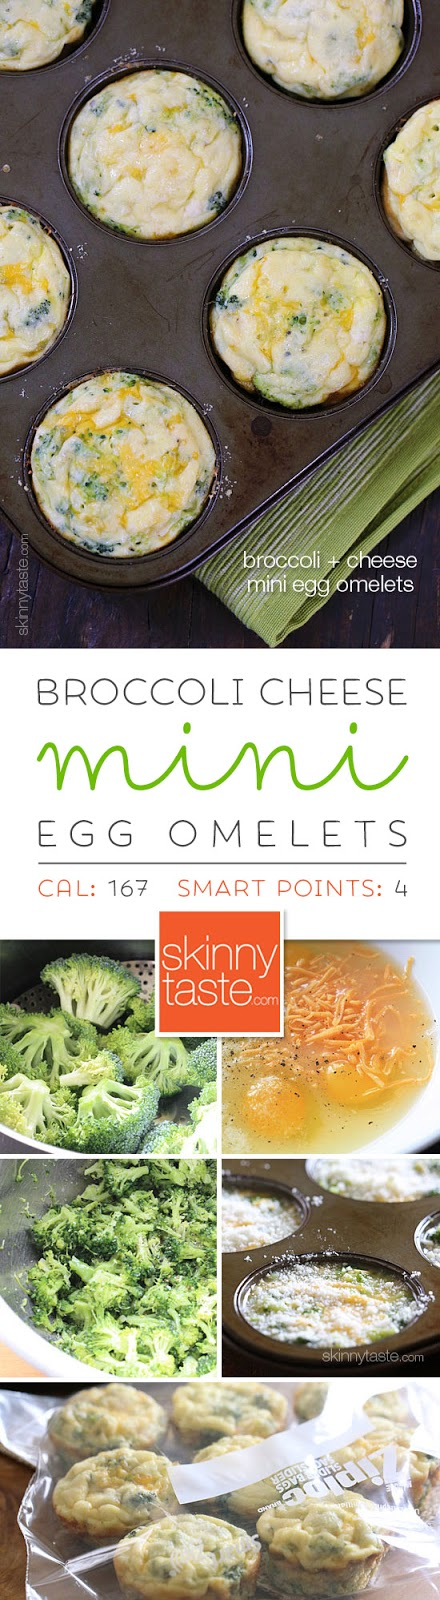 Broccoli and Cheese Mini Egg Omelets –perfect to make ahead for the week. Freezer-friendly too!